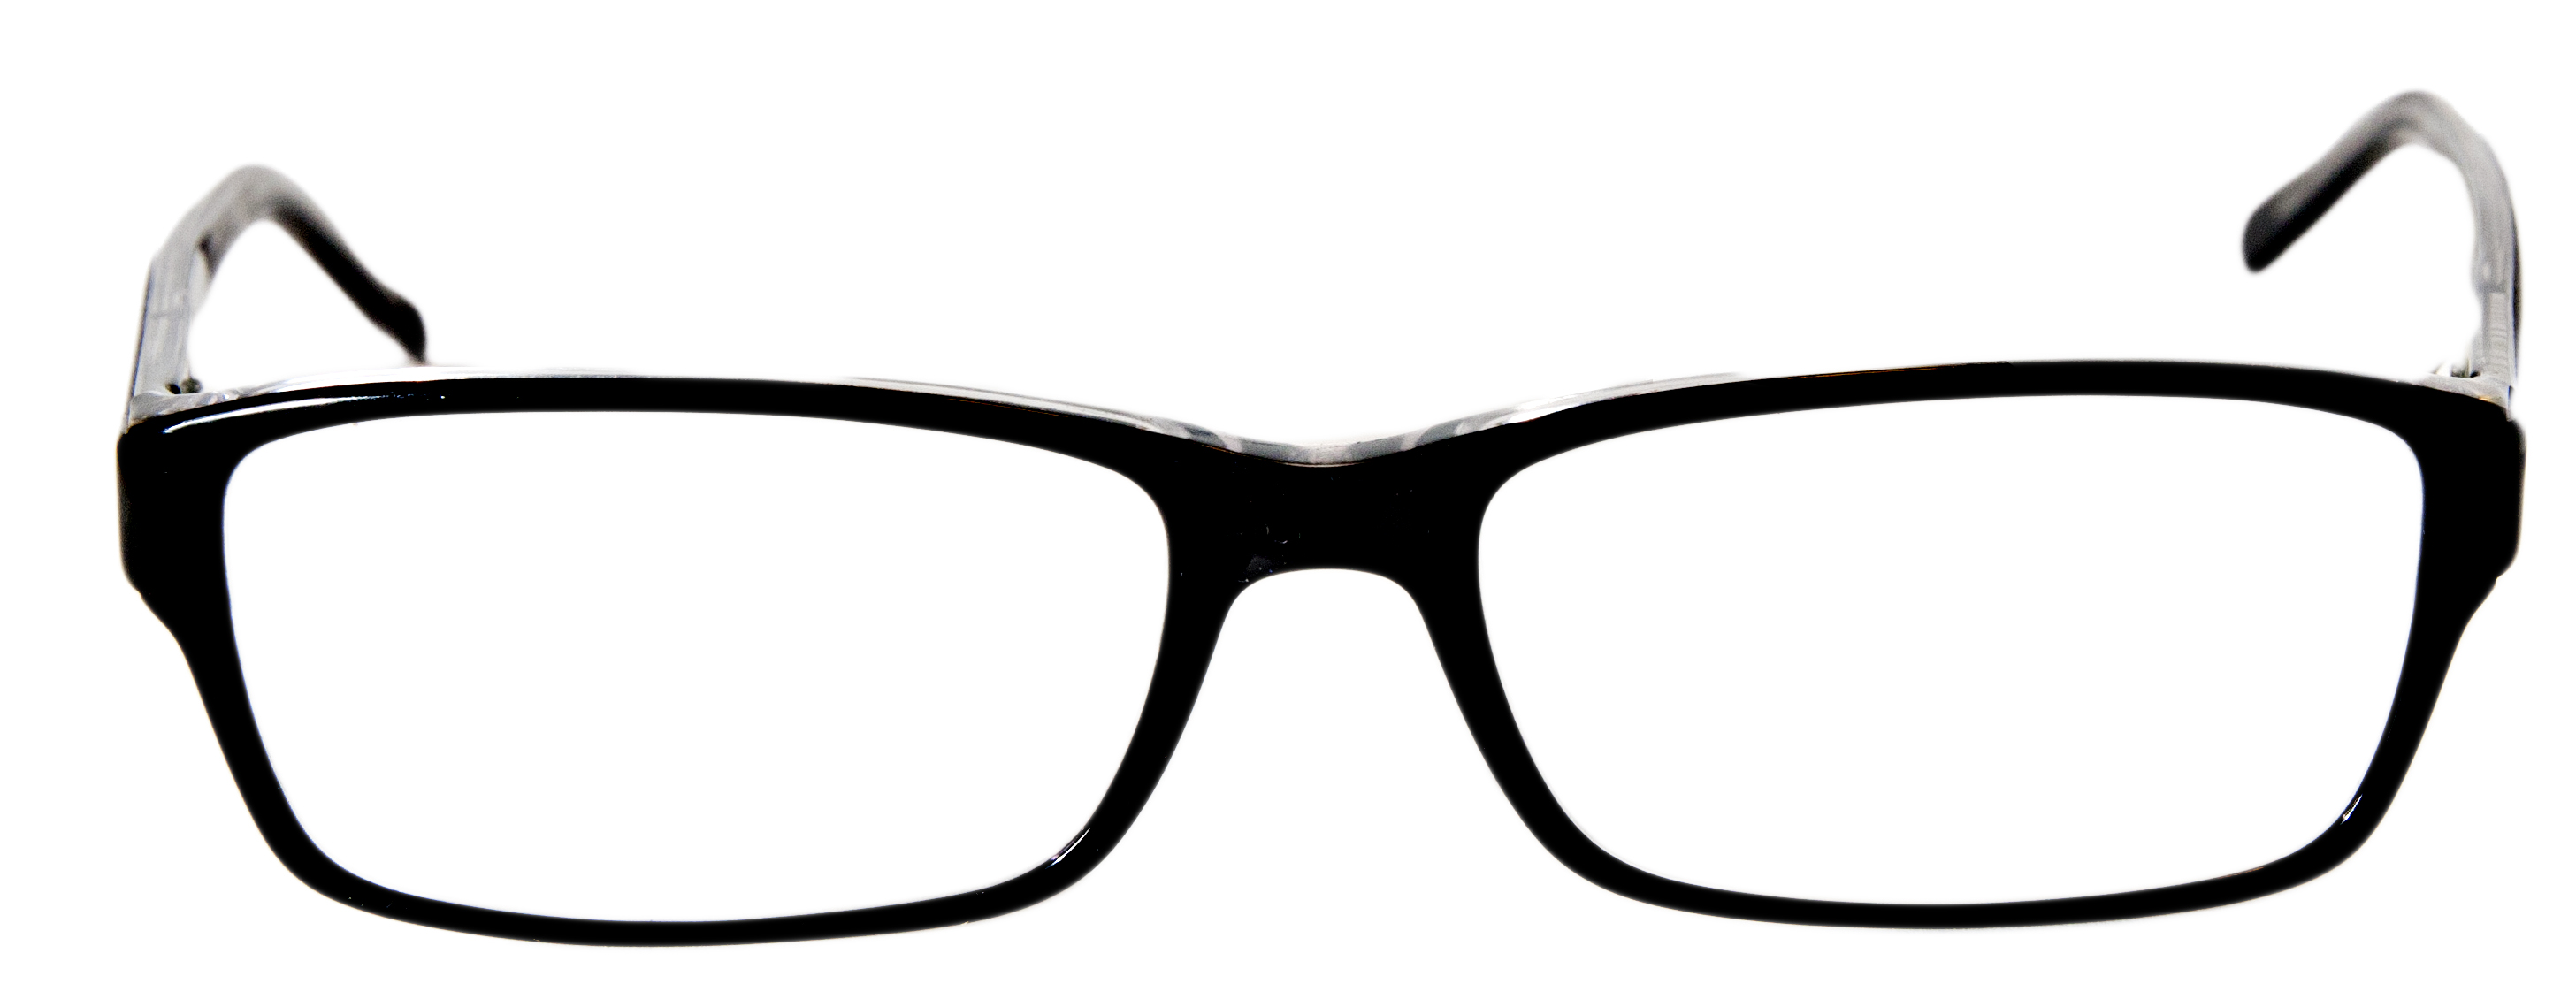 Free Glasses Download Free Clip Art Free Clip Art On